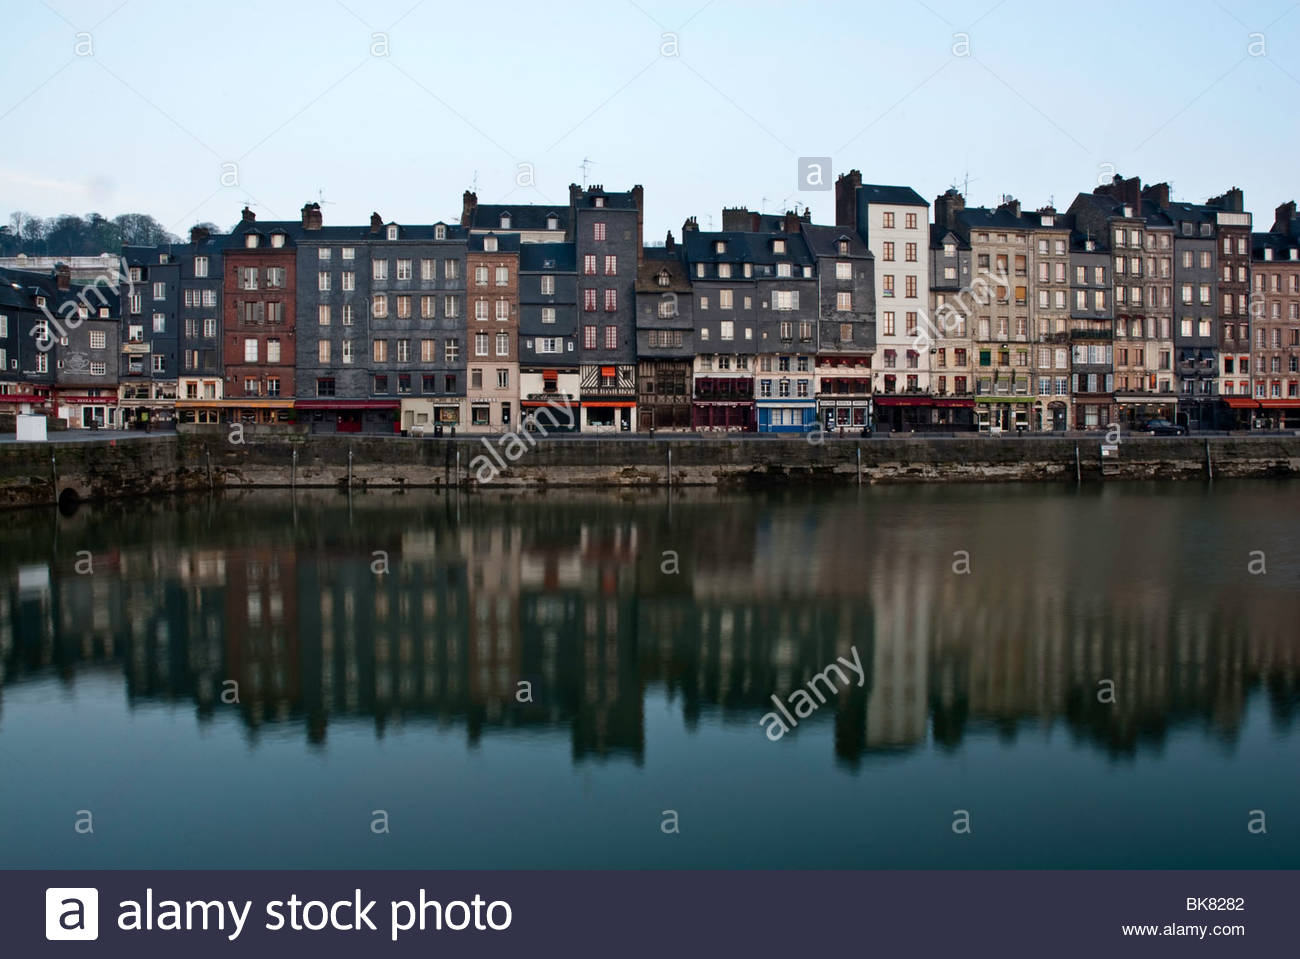 Tall houses at dawn on Vieux Bassin, Honfleur, Normandy, France - Stock Image